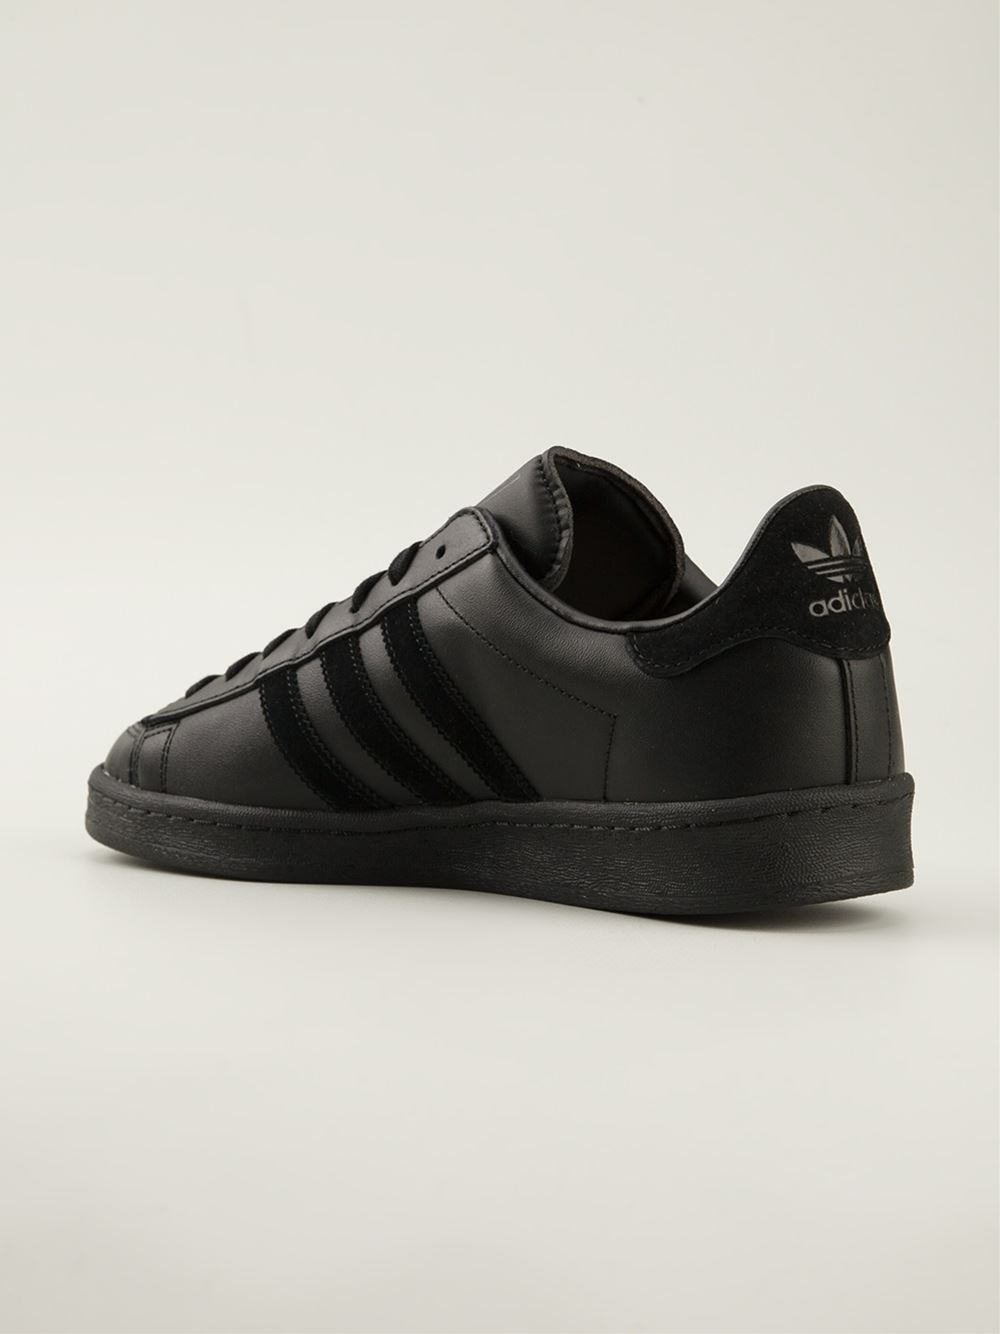 8062db0b8239 Lyst - adidas  Jabbar  Low Sneakers in Black for Men